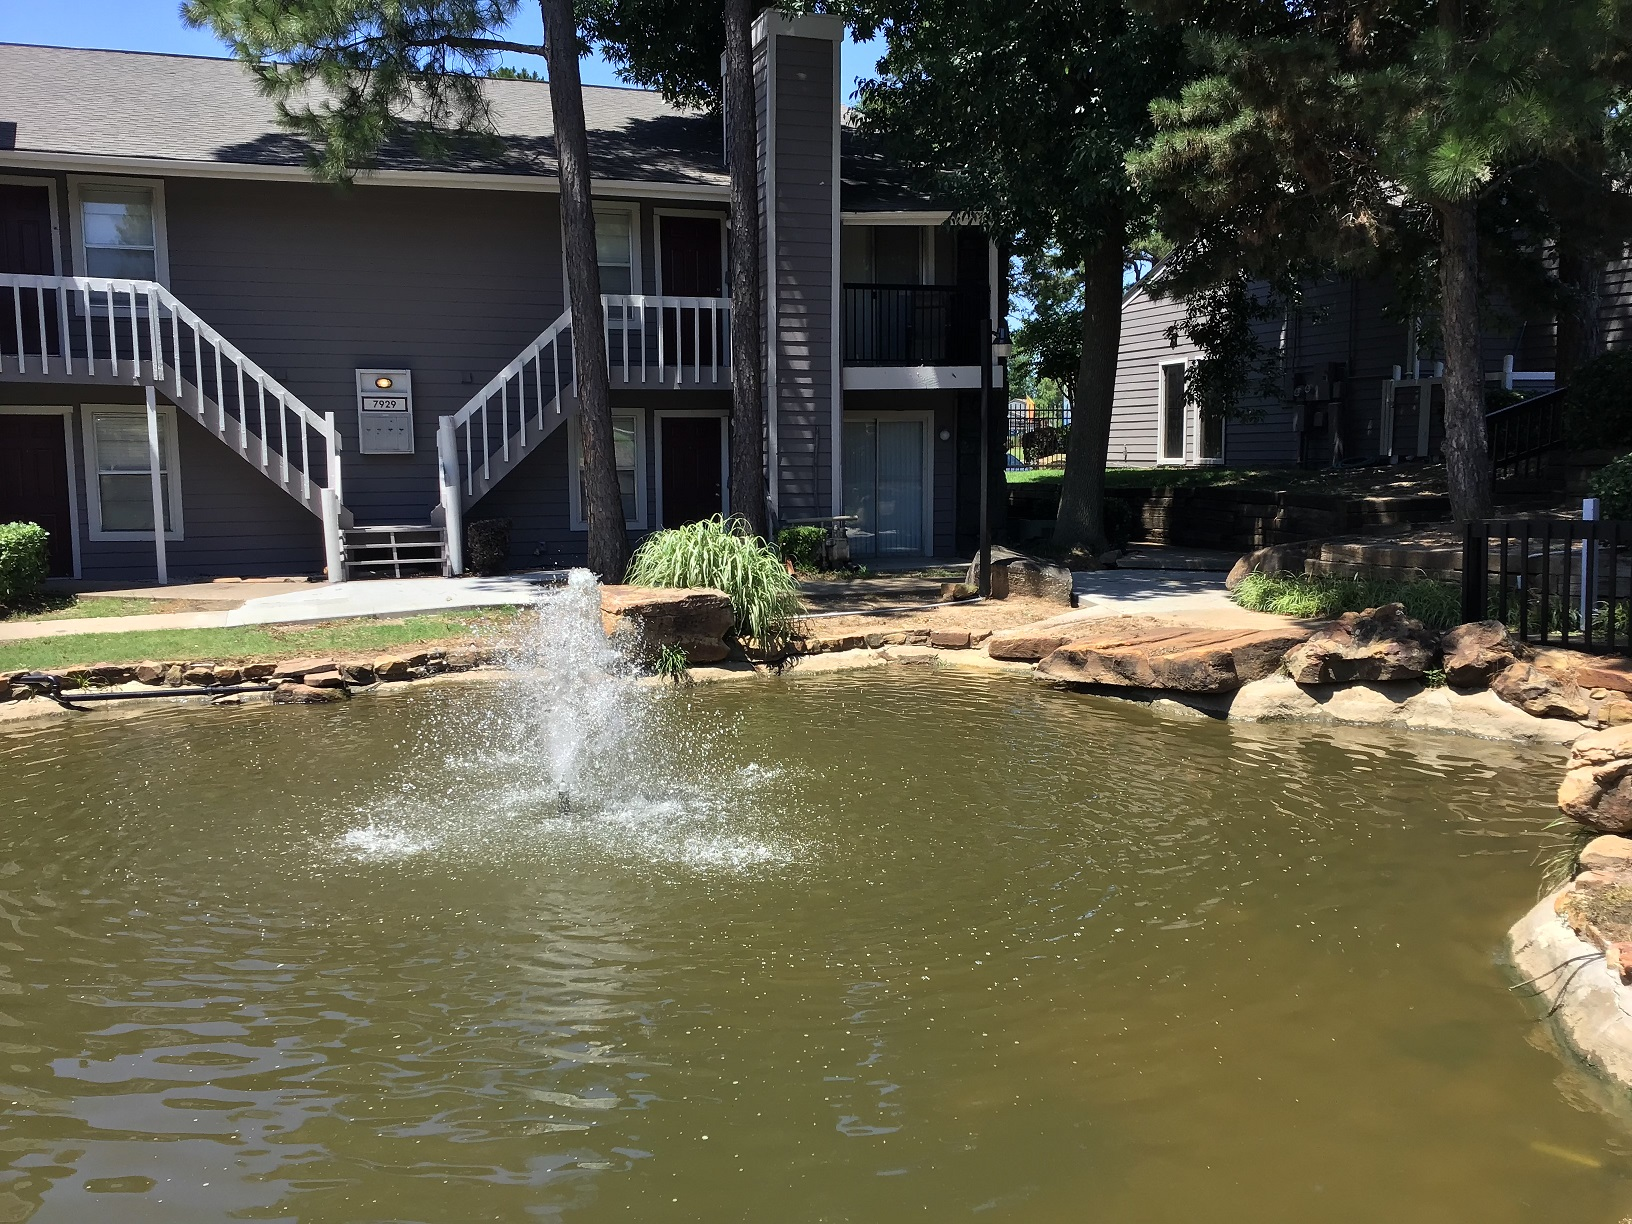 Fountain at Rustic Woods Apartments in Tulsa, Oklahoma